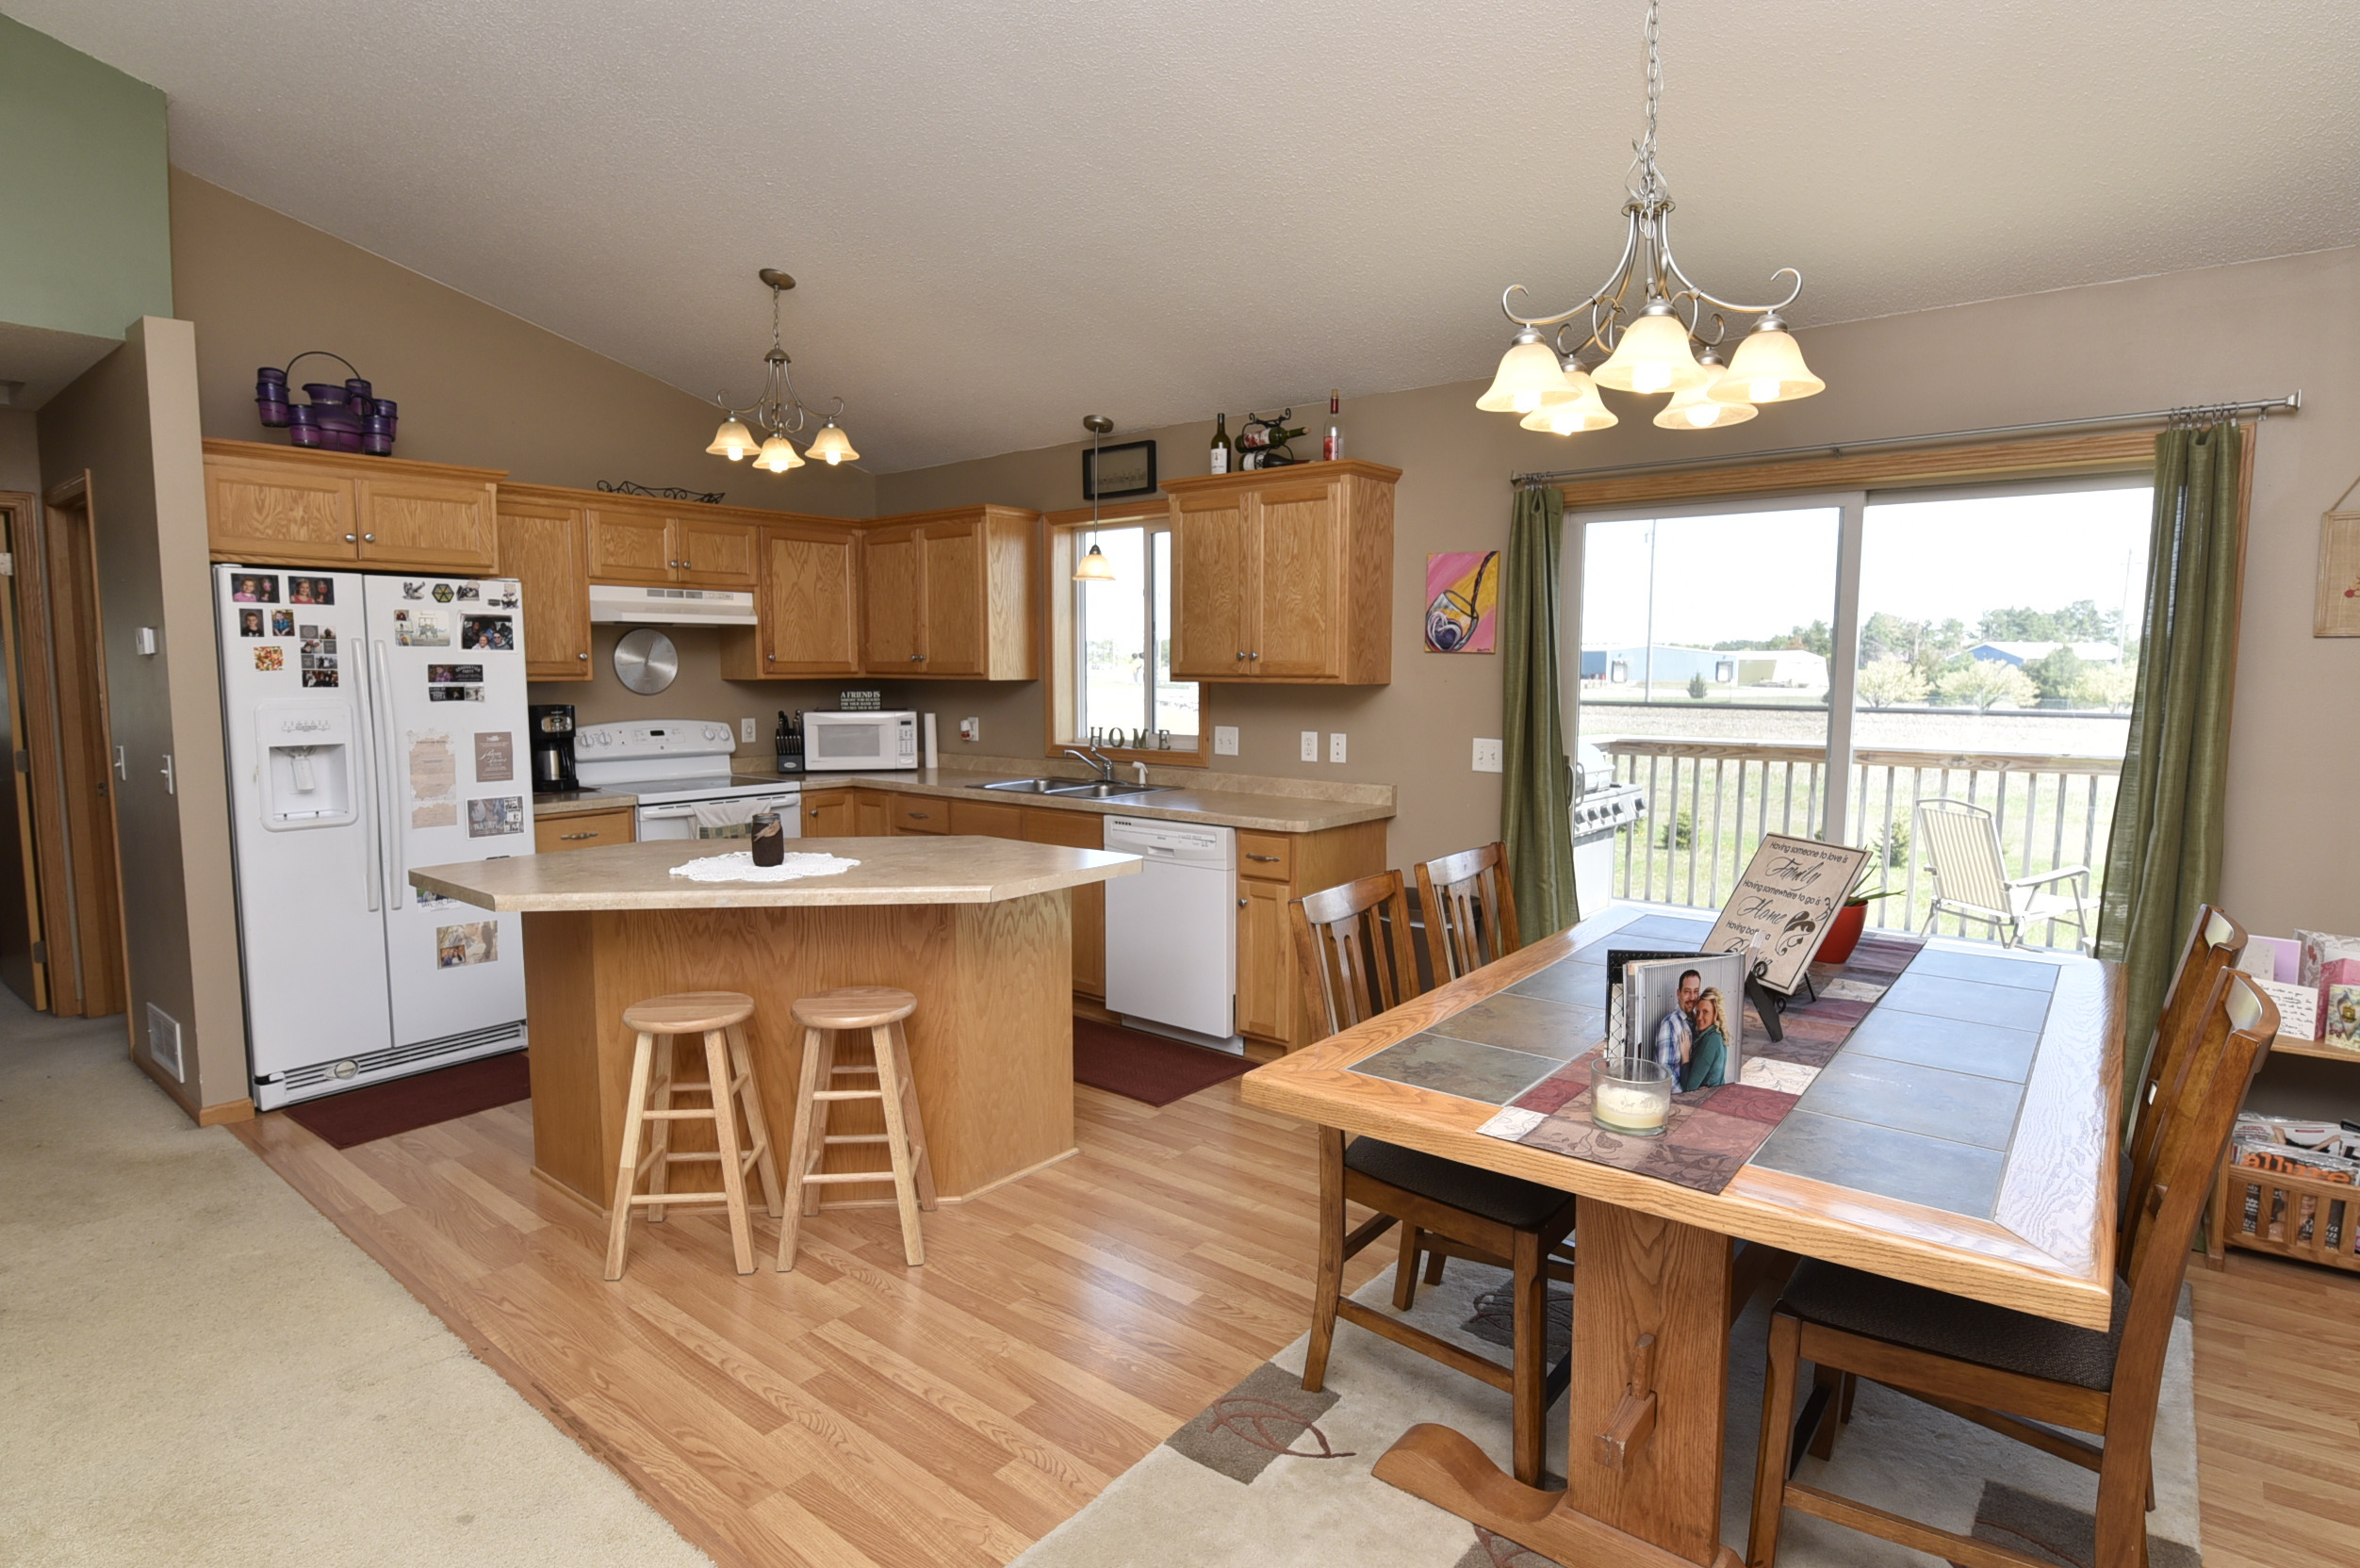 Split Foyer Open Kitchen : Re max results open house rice pm